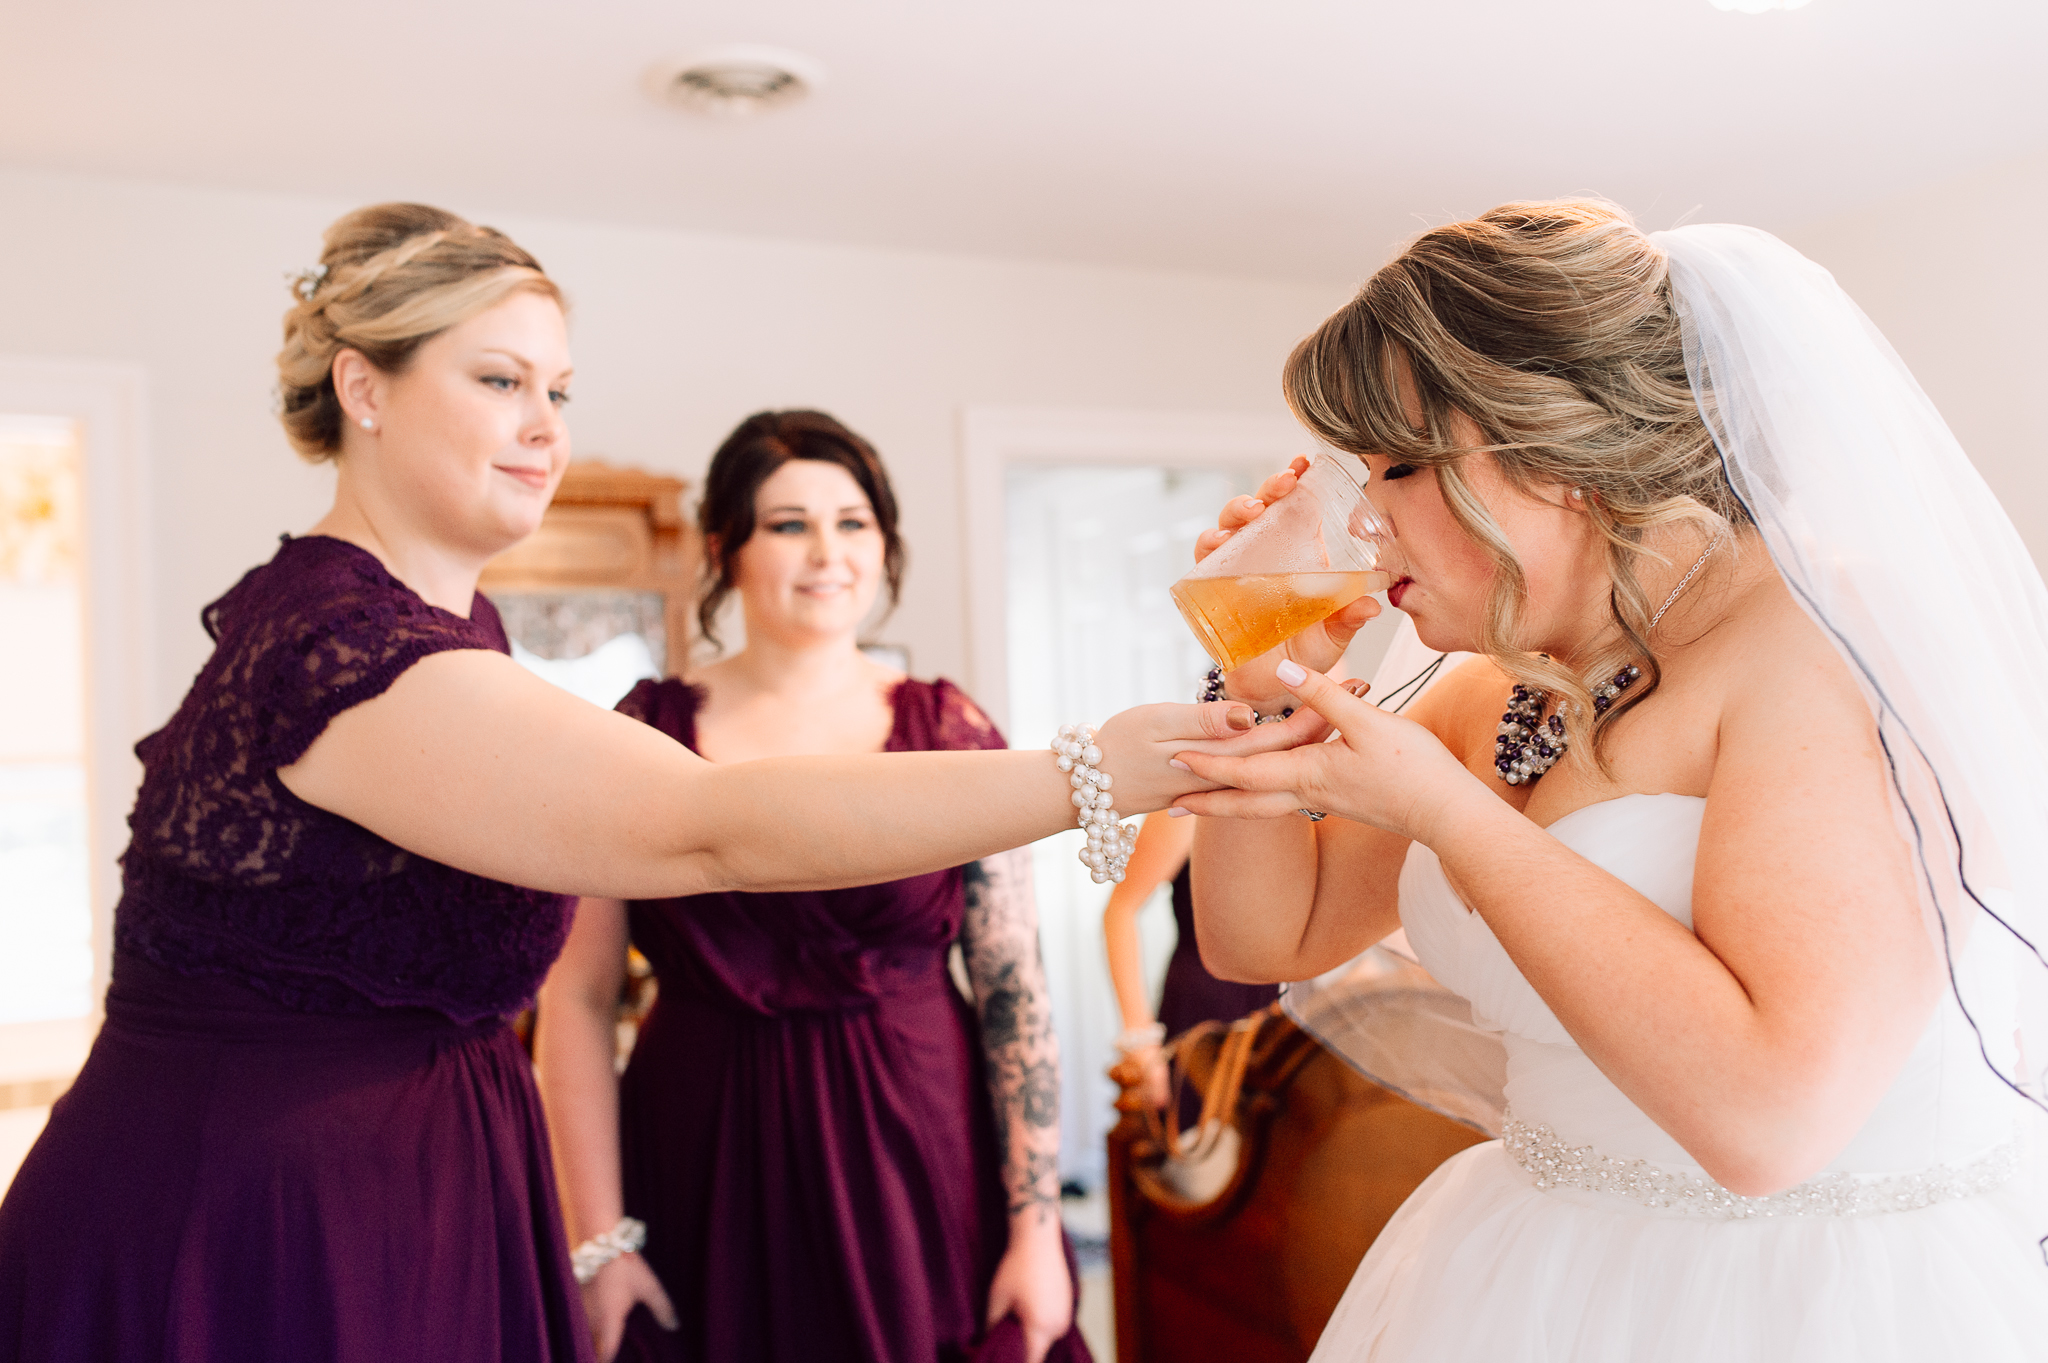 youseephotography_virginiawedding_fall_WallaceManor_EmilyCody (20).jpg